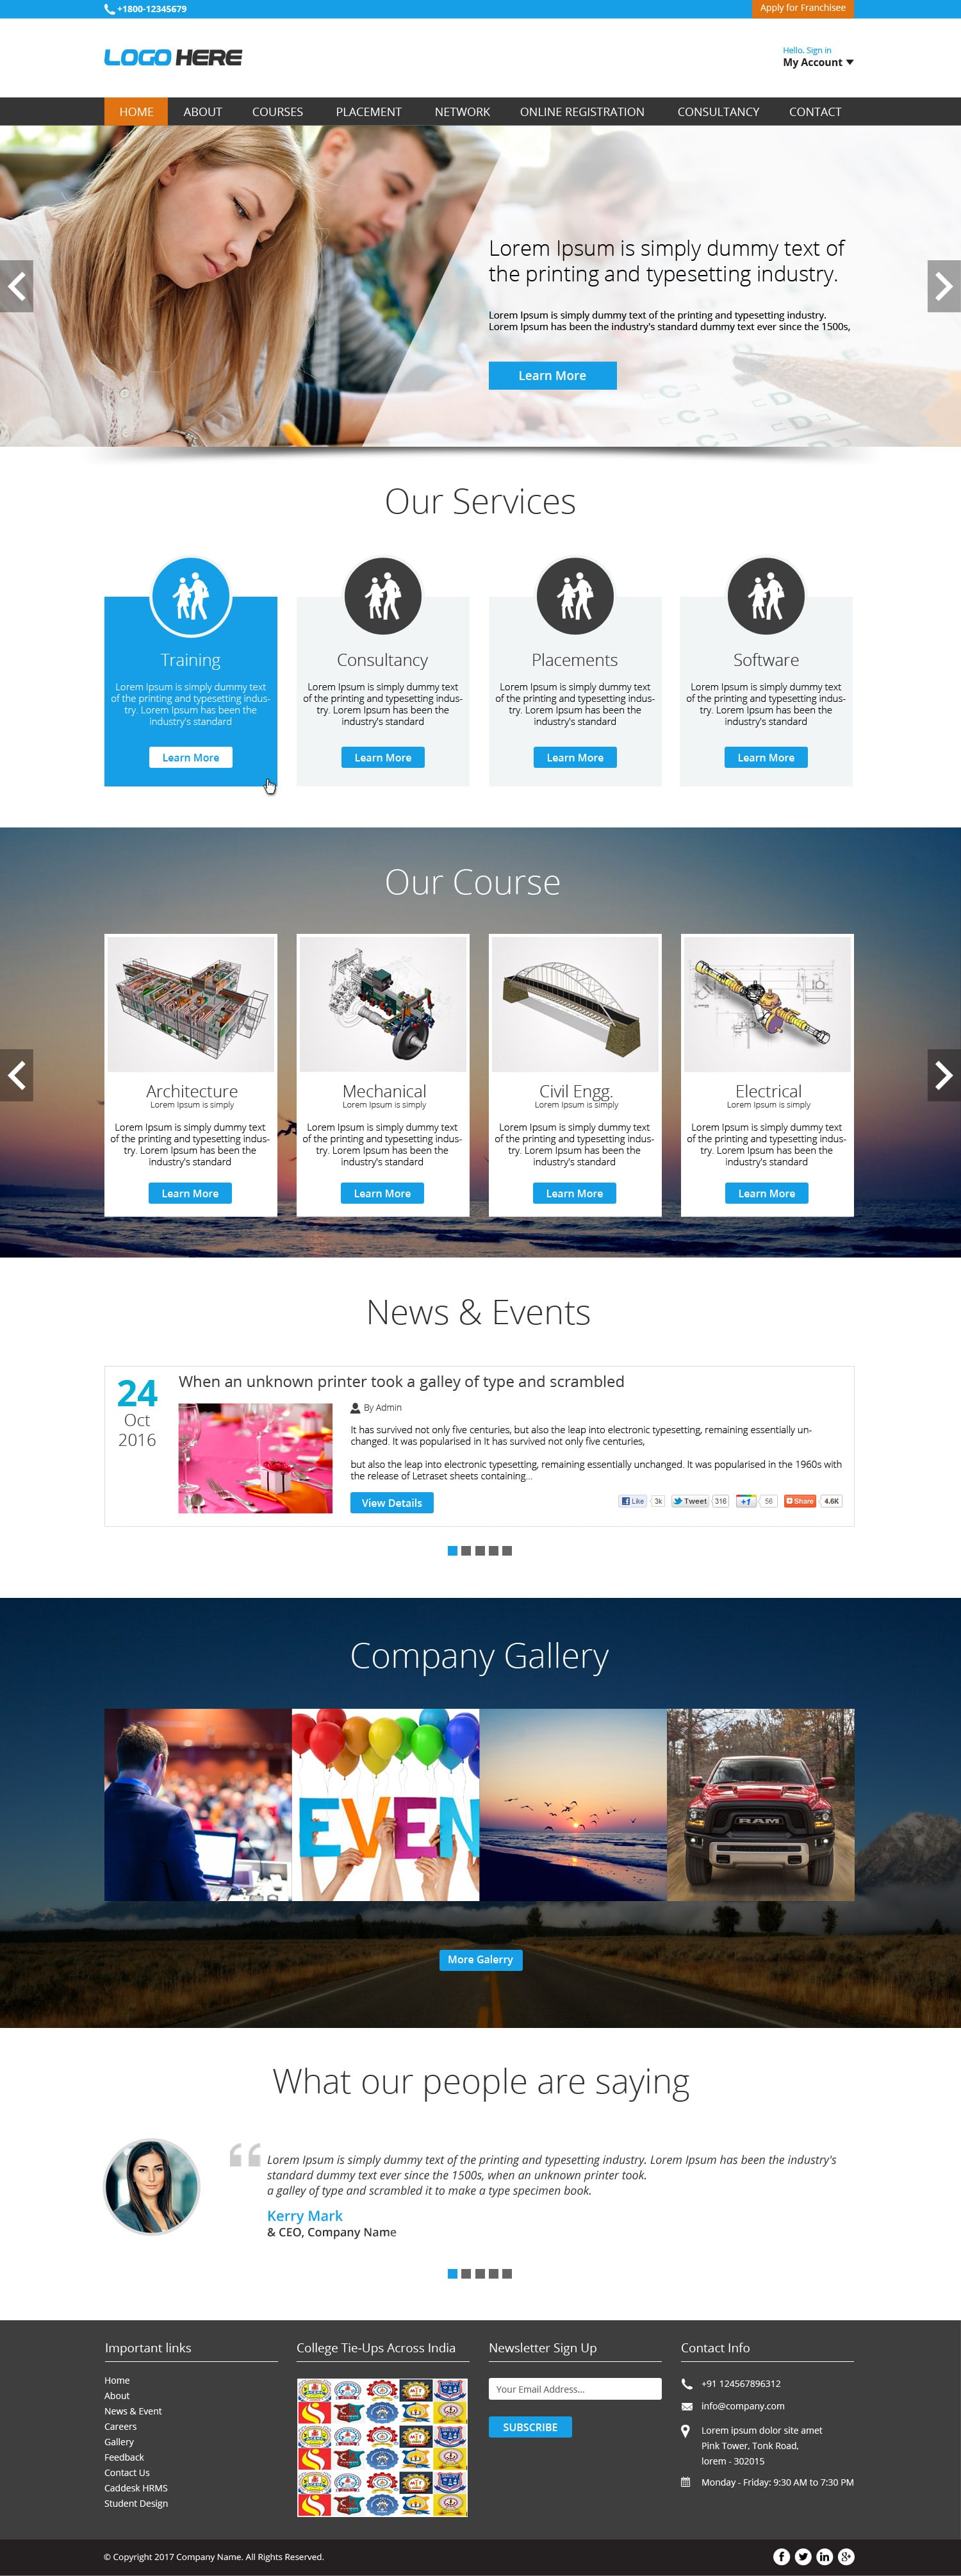 Consulting and Business Solutions free psd design